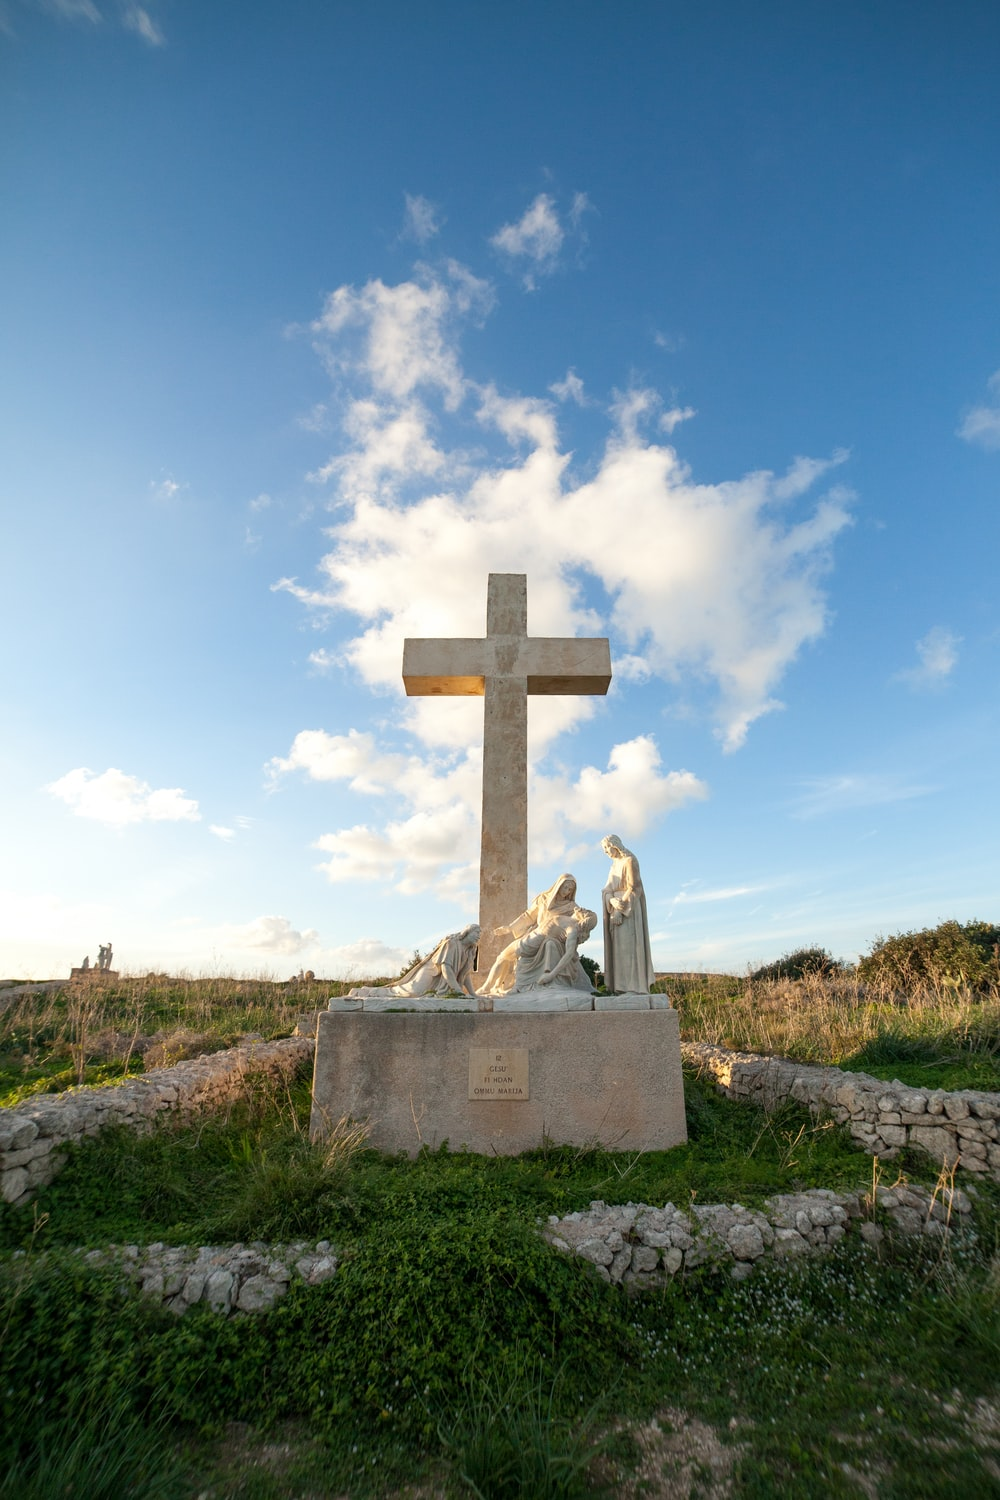 gray concrete cross on green grass under white clouds during daytime